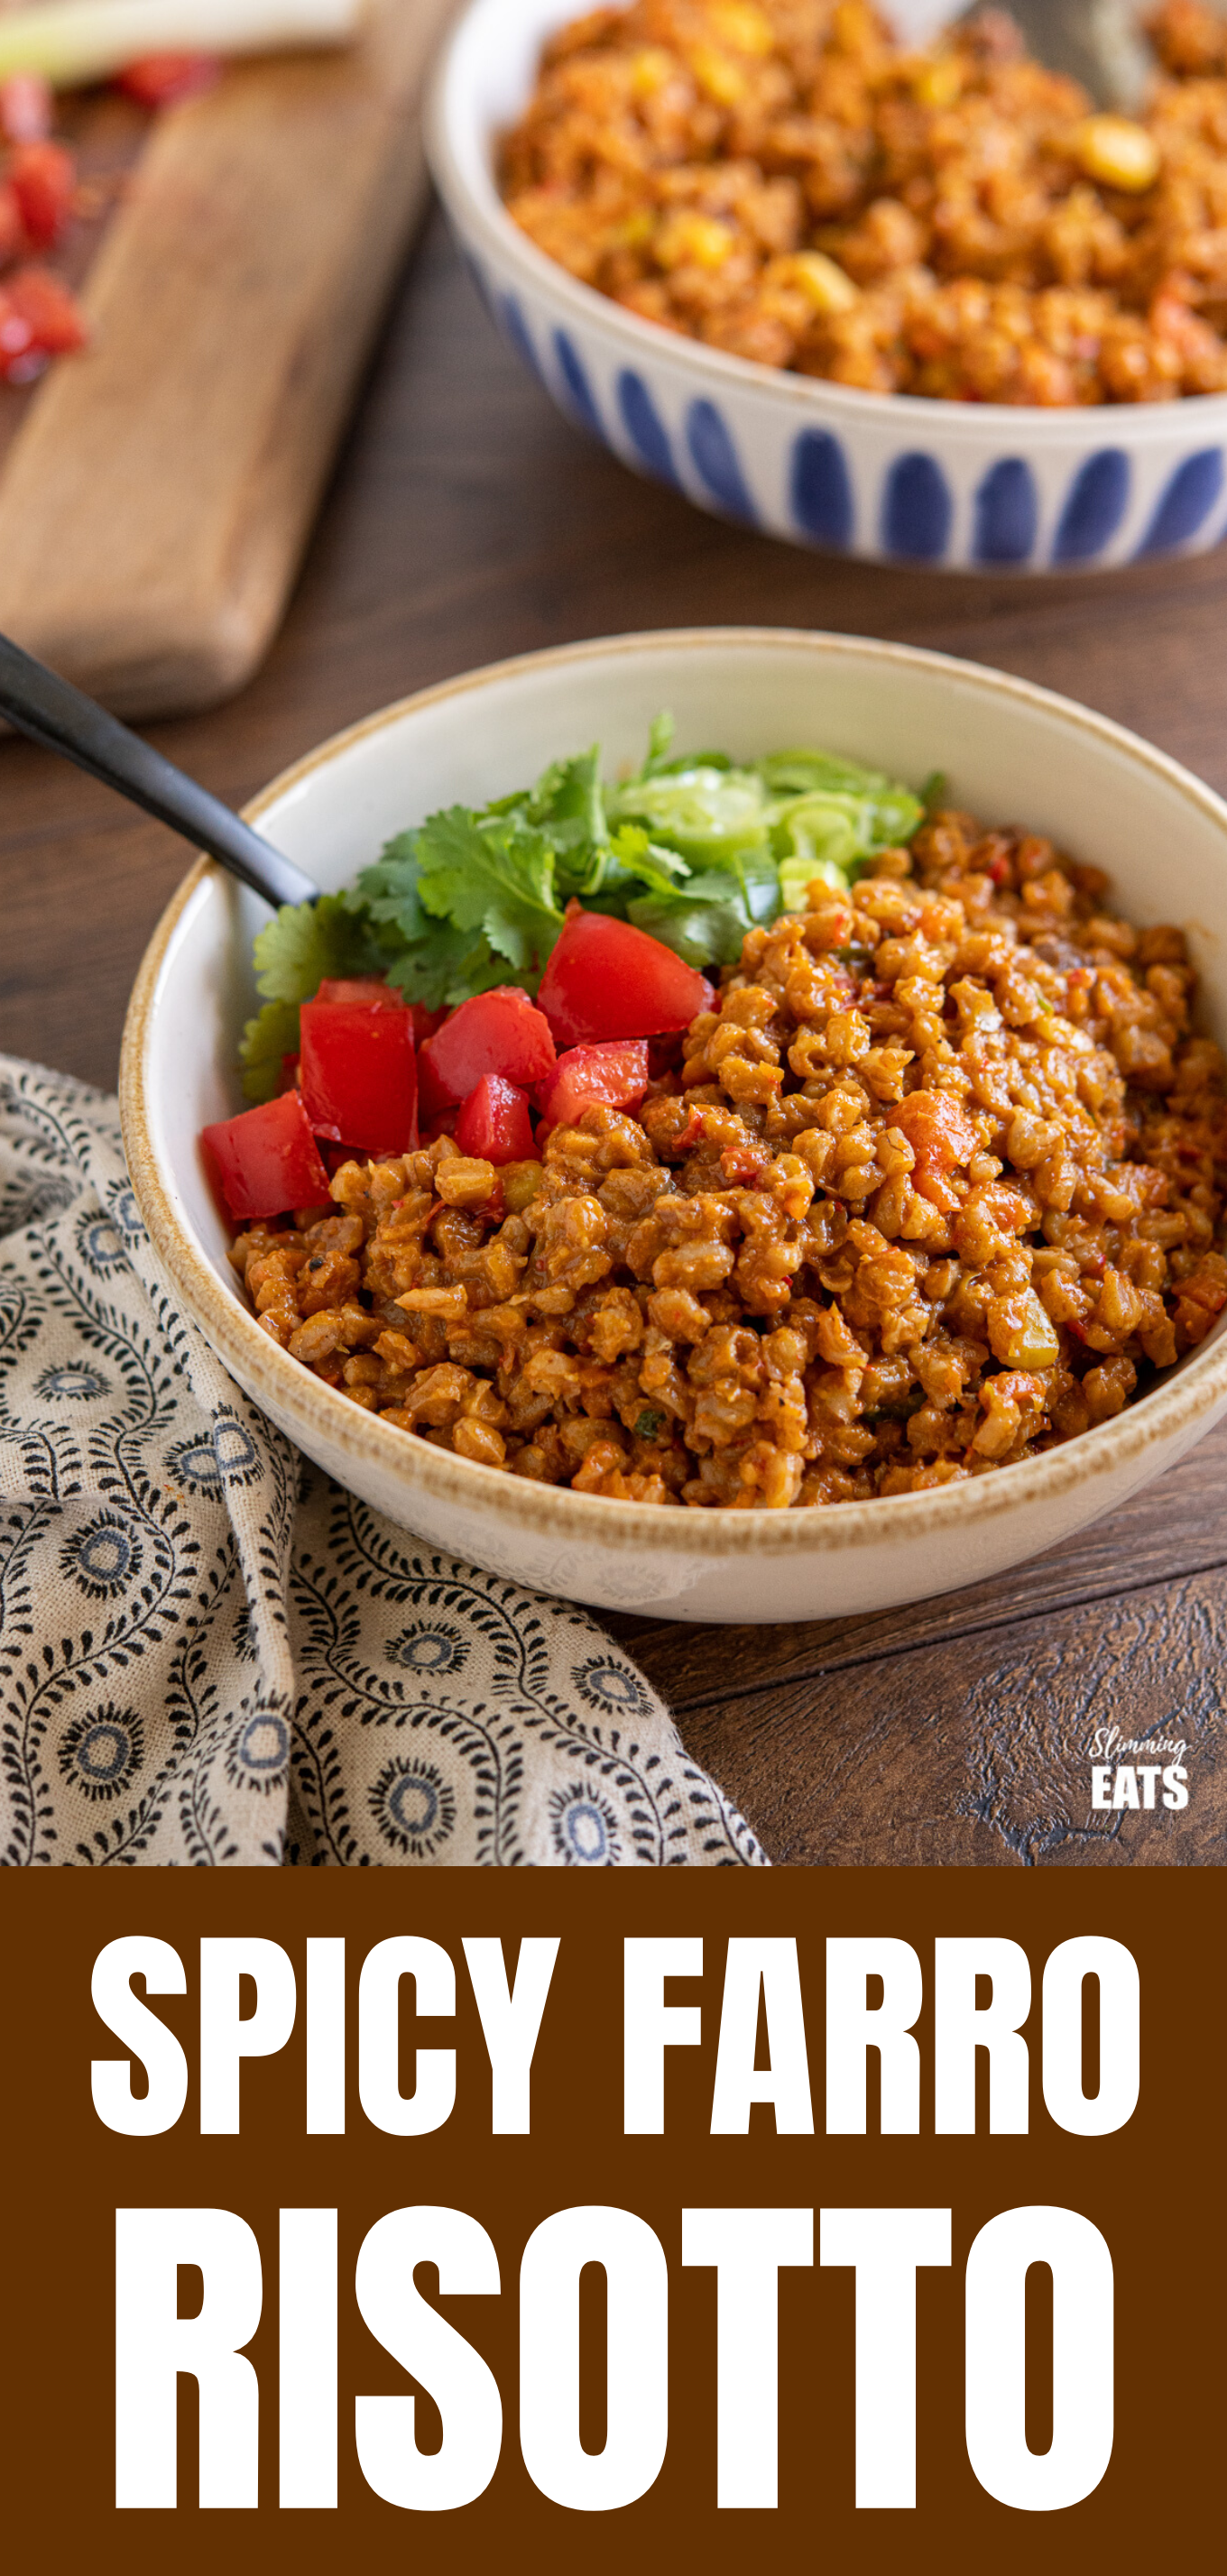 Spicy Farro Risotto Pinned Image